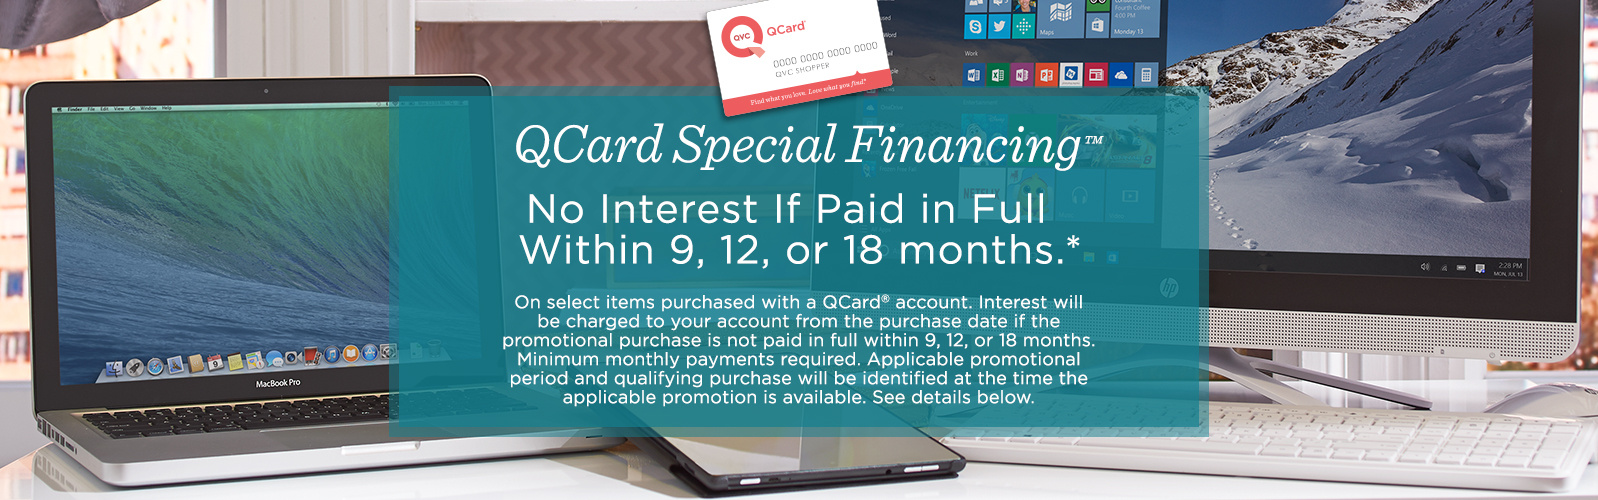 QCard Special Financing Electronics QVC – Sites With Payment Plans Like Qvc